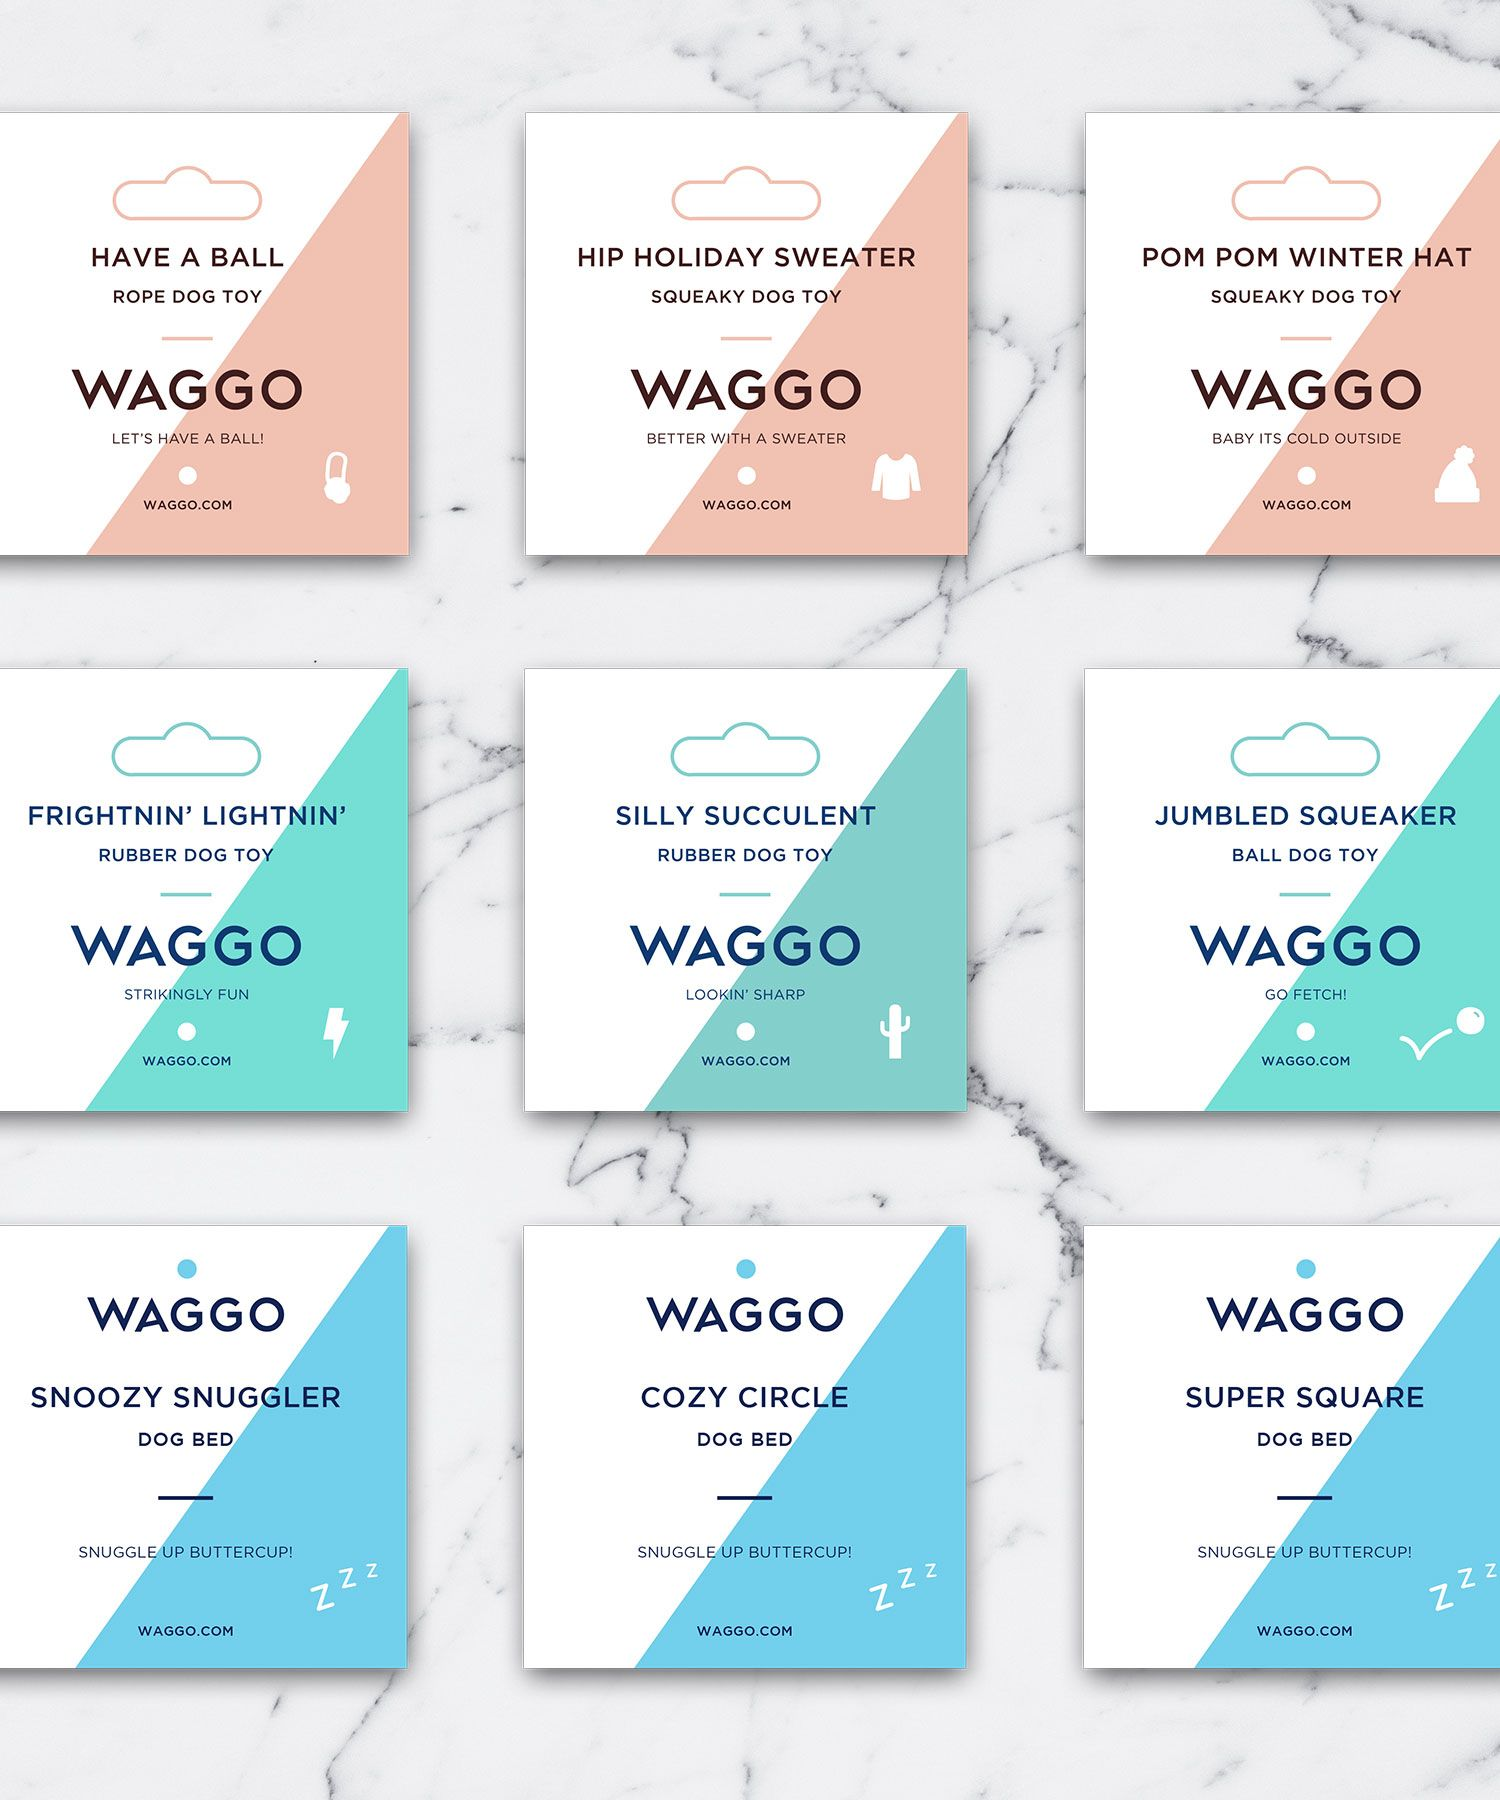 Waggo product tags design by substrate creative substrate